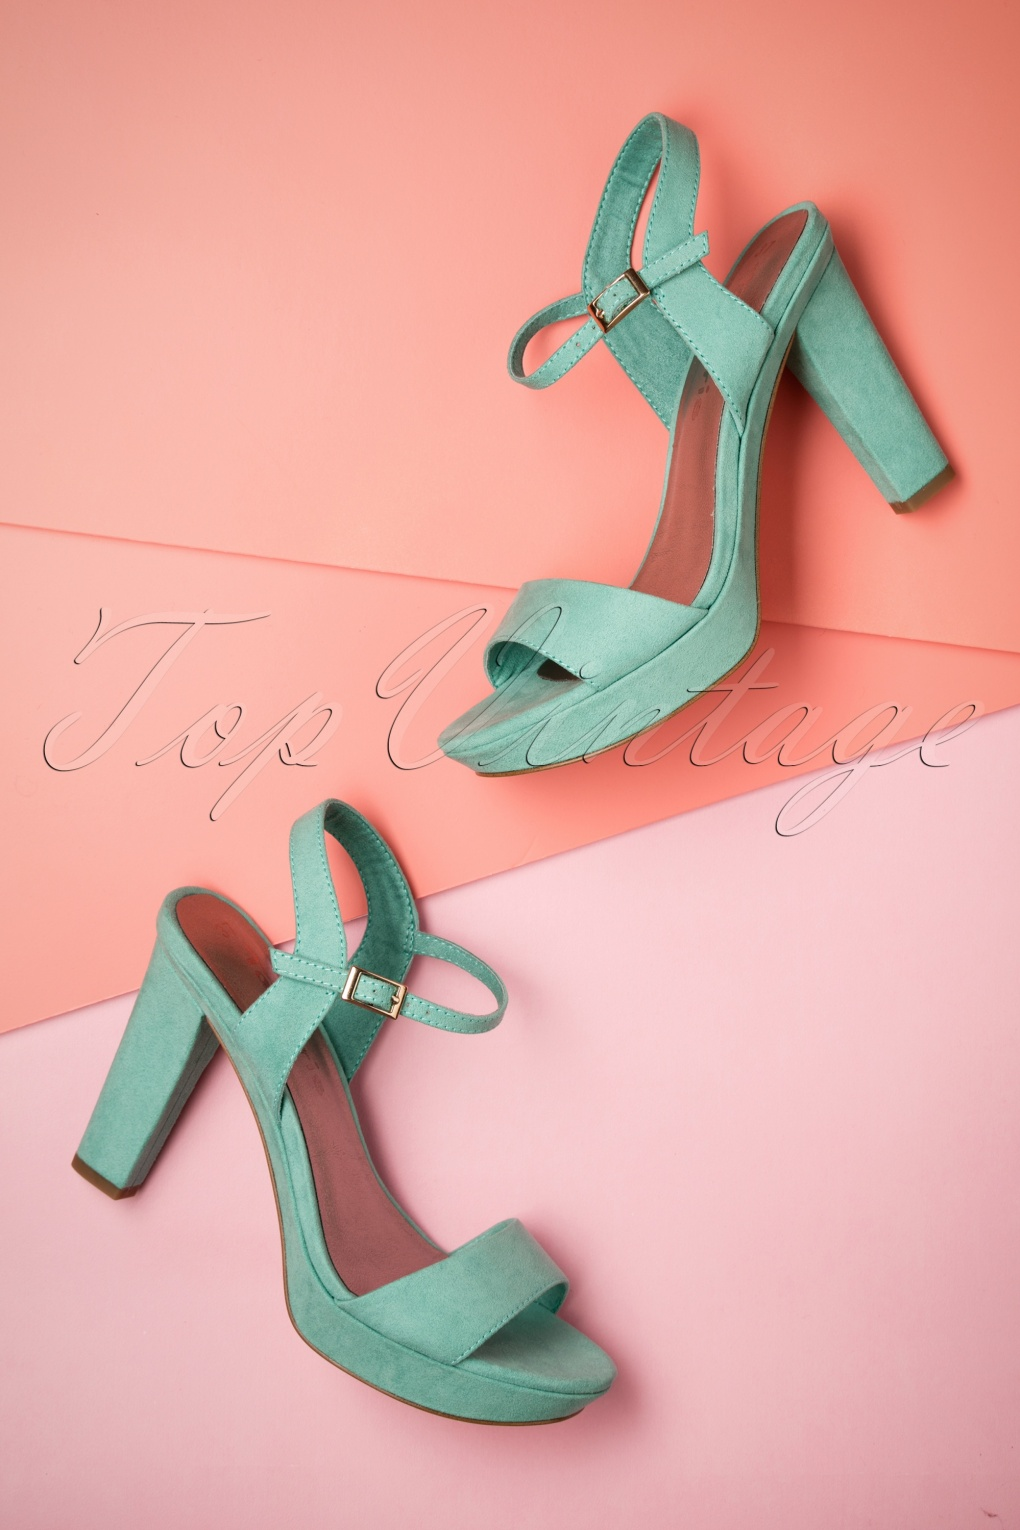 1950s Style Shoes 60s Mary Jane Platform Pumps in Mint £52.73 AT vintagedancer.com